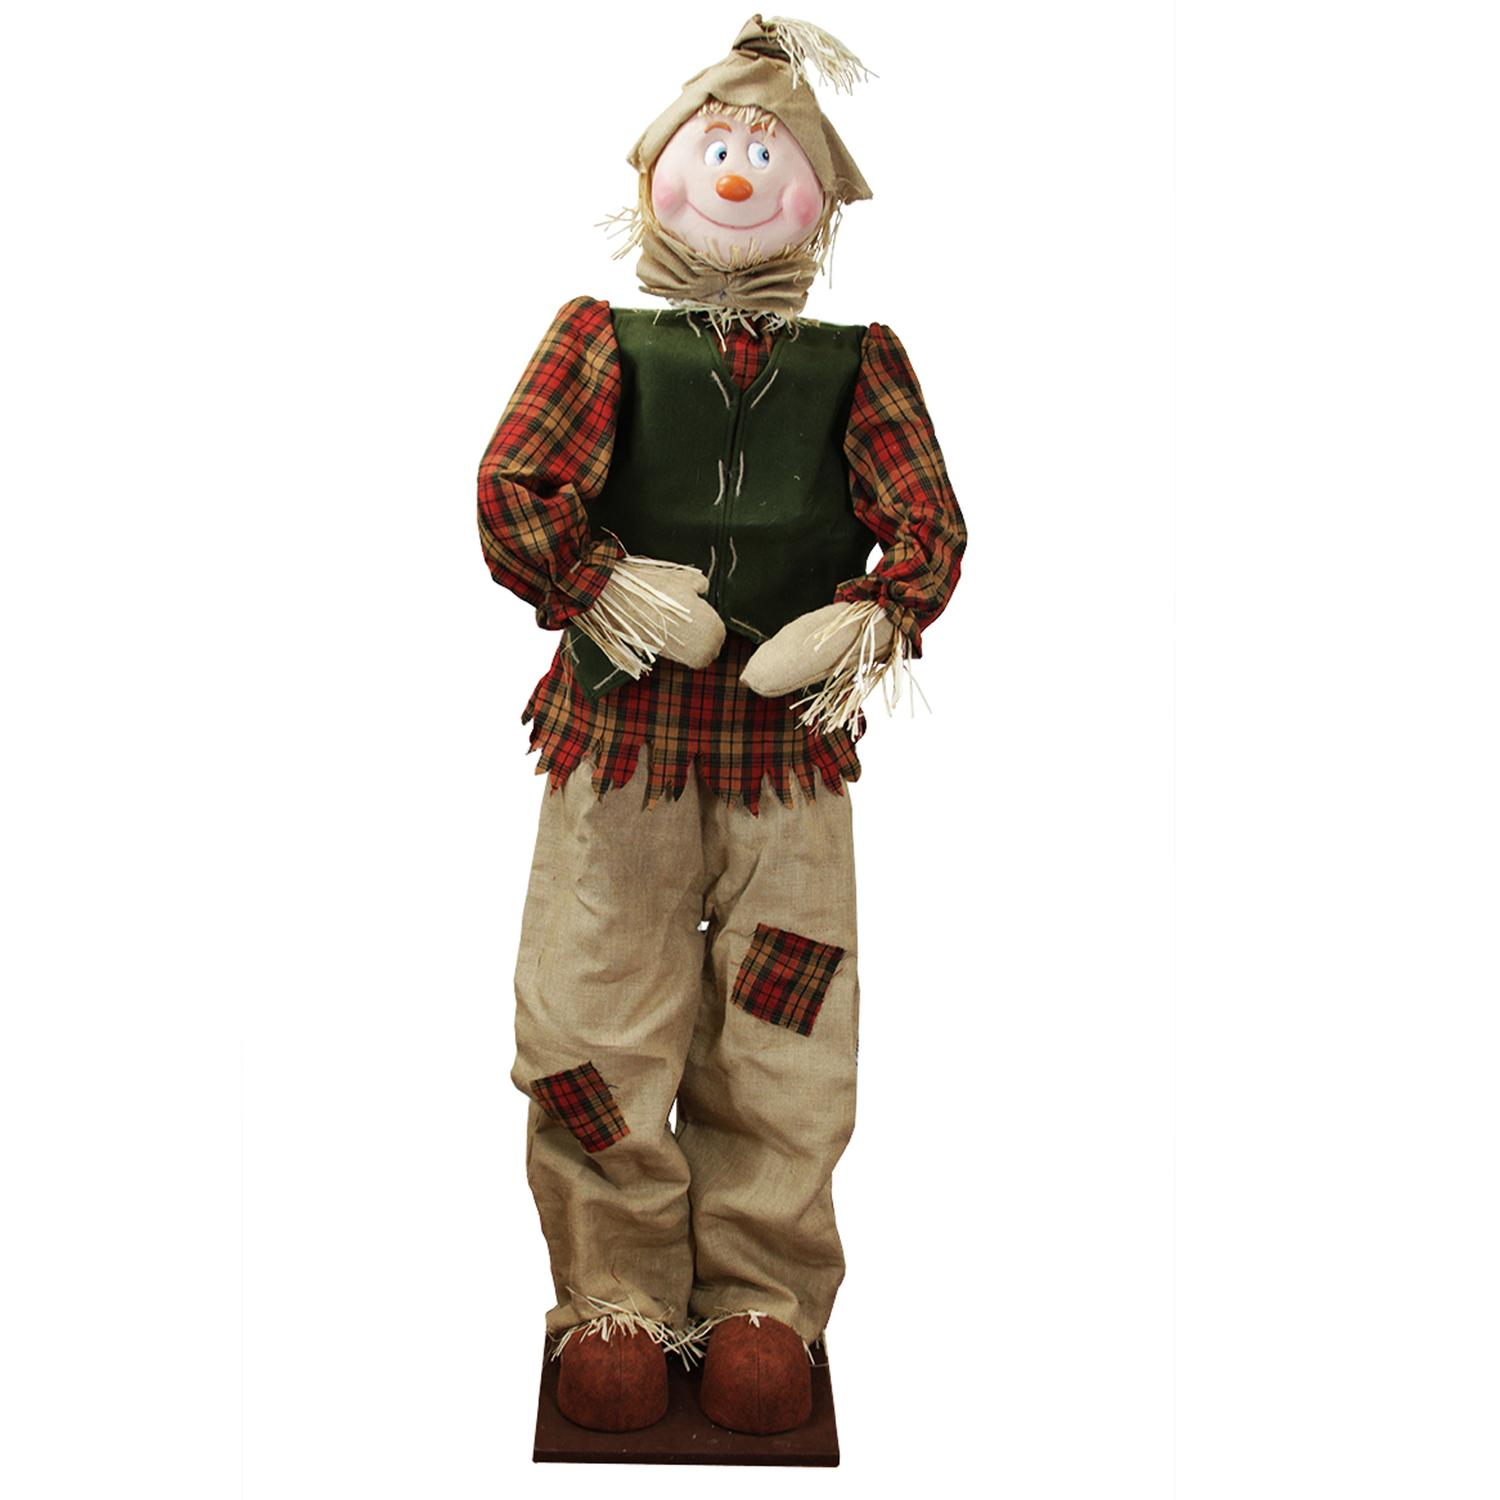 Huge 6 Foot Life-Size Plush Autumn Scarecrow - Sitting or Standing